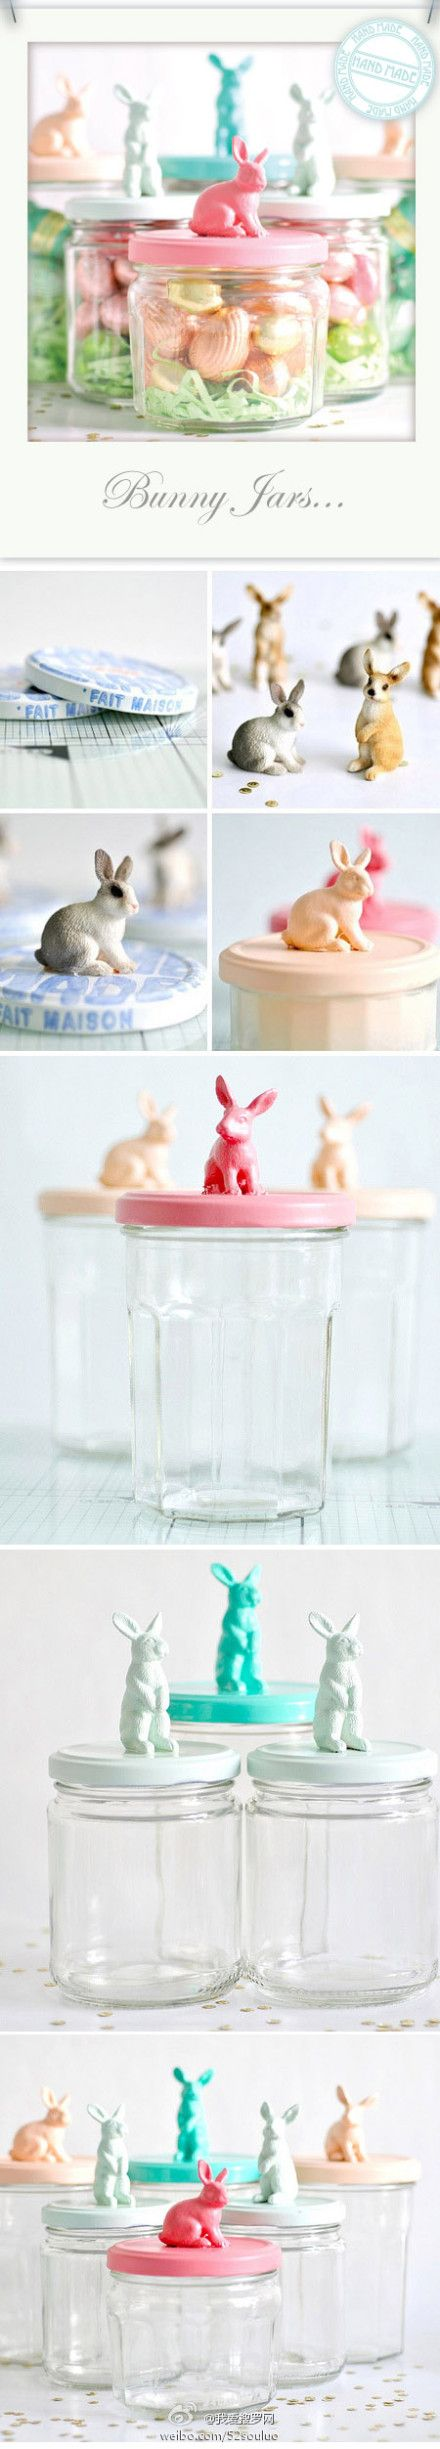 DIY idea :: Bunny jars